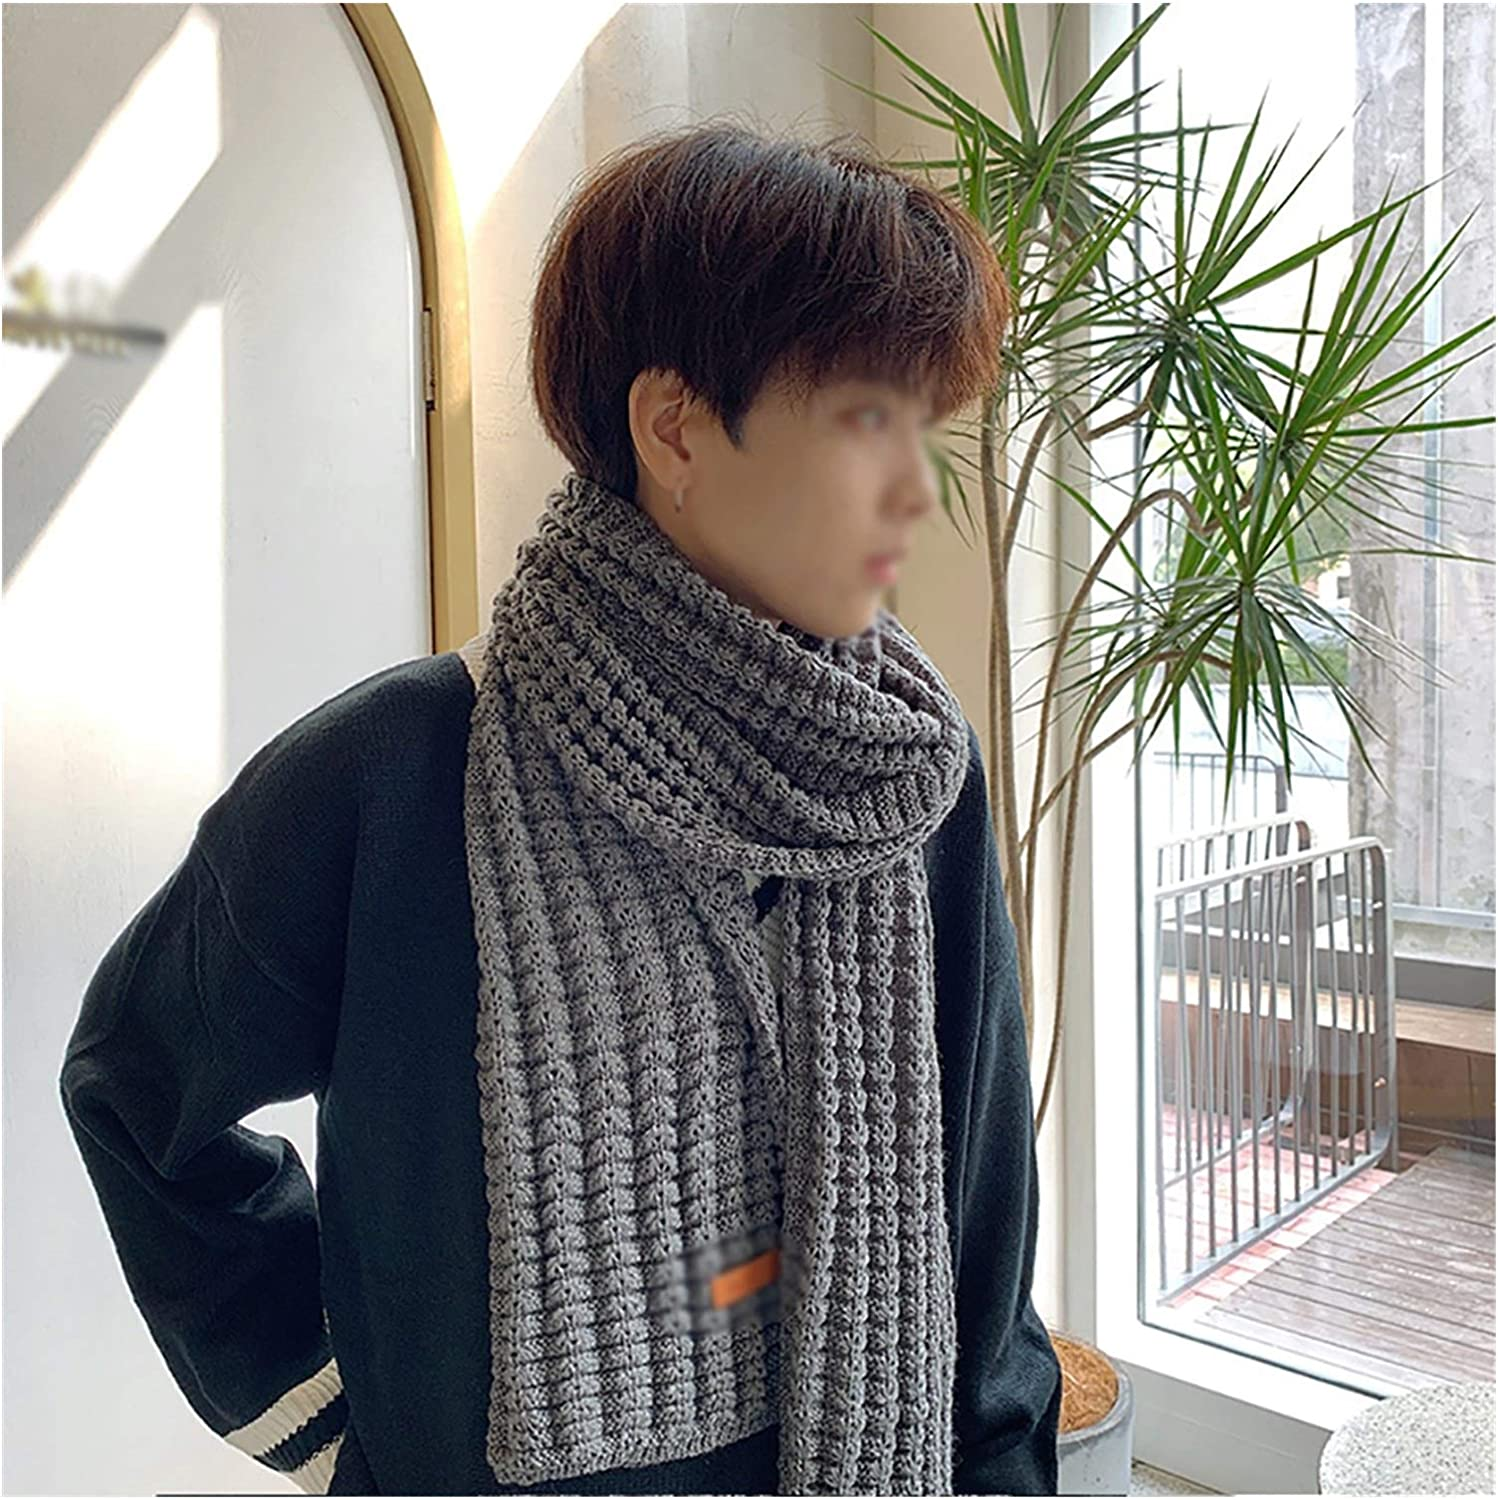 Unisex Scarf Winter Men Young Knitted Scarves Thick Long Solid Colors Fall Neck Warmer Scarf Soft Fashion (Color : B)